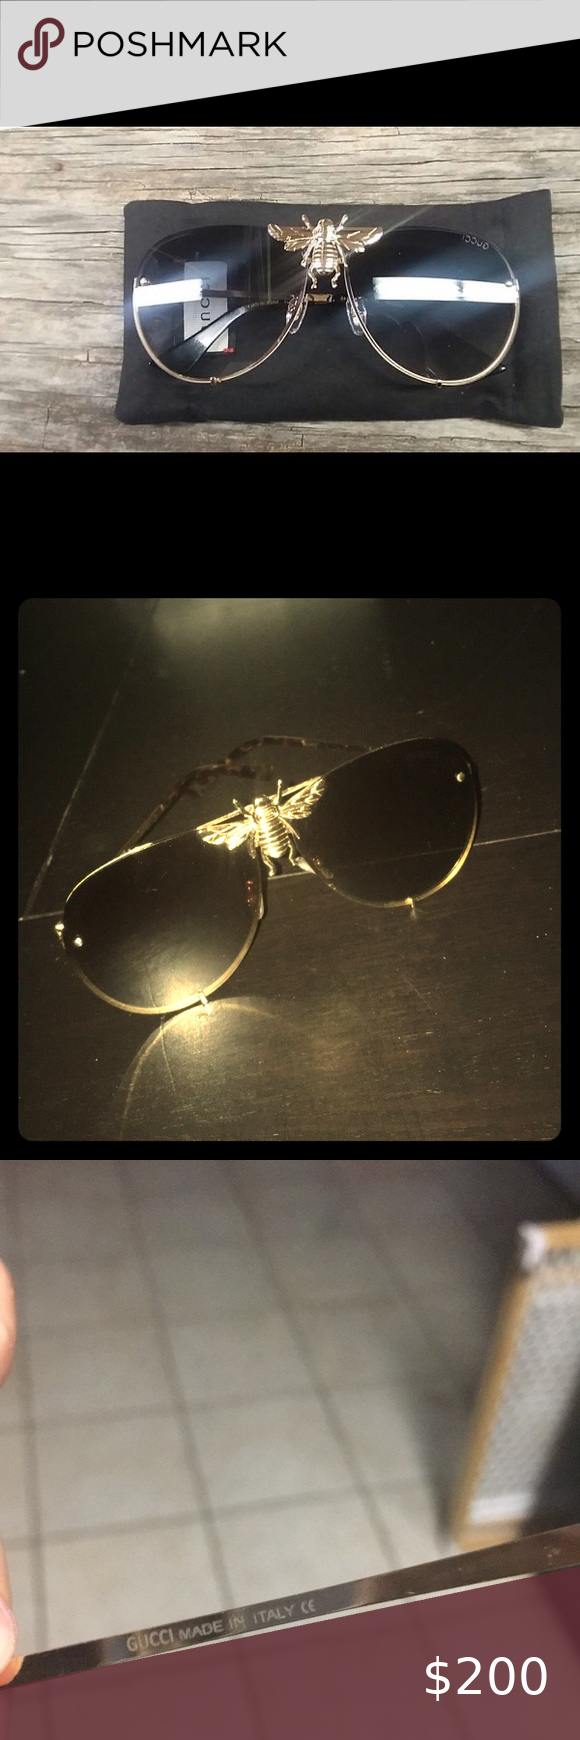 Gucci I Ll Be Rich Forever Sunglasses Brown And Gold Gucci Sunglasses As Seen On Artists Like Rick Ross Snoop Gucci Sunglasses Accessories Gucci Sunglasses